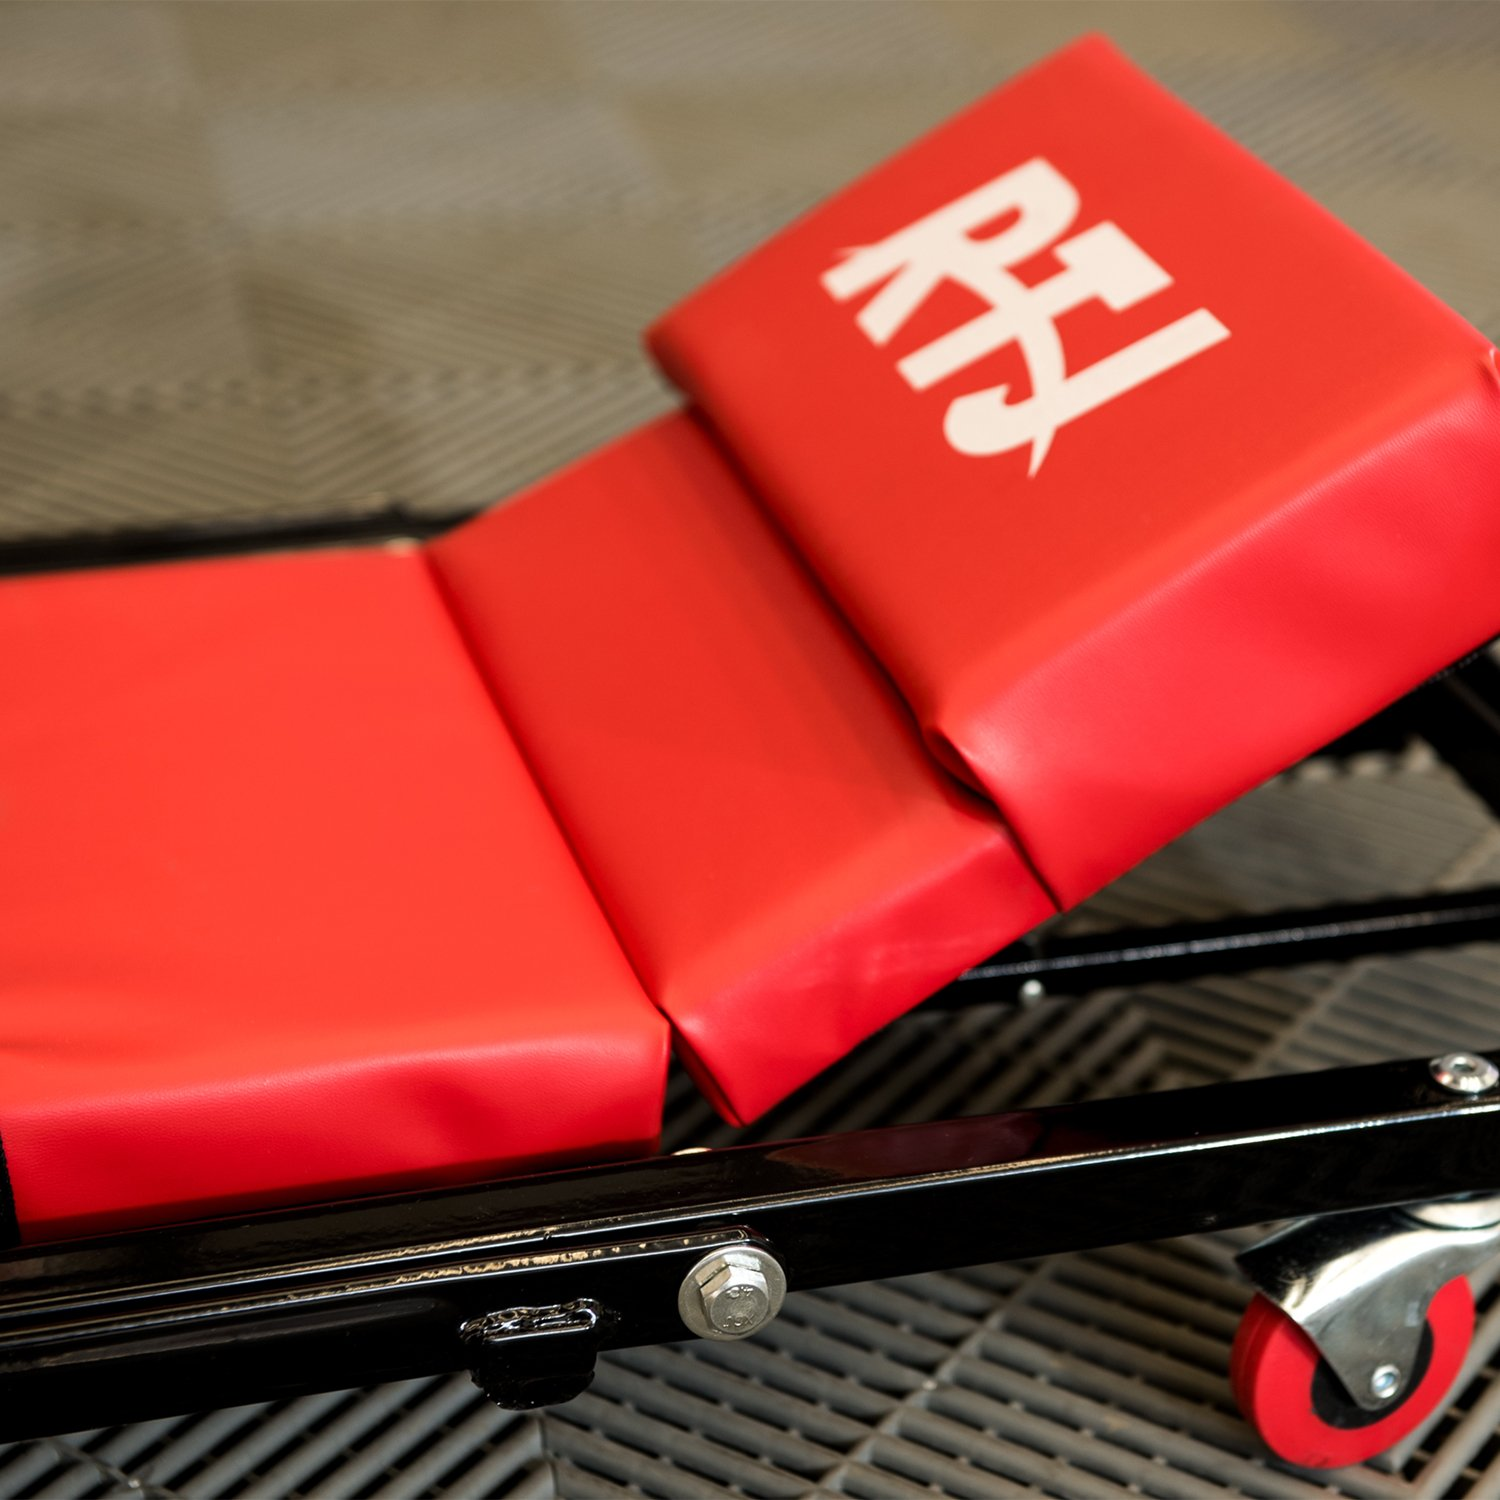 RTJ 47 Inch N-Creeper Seat with Adjustable Headrest, Red by RTJ (Image #6)